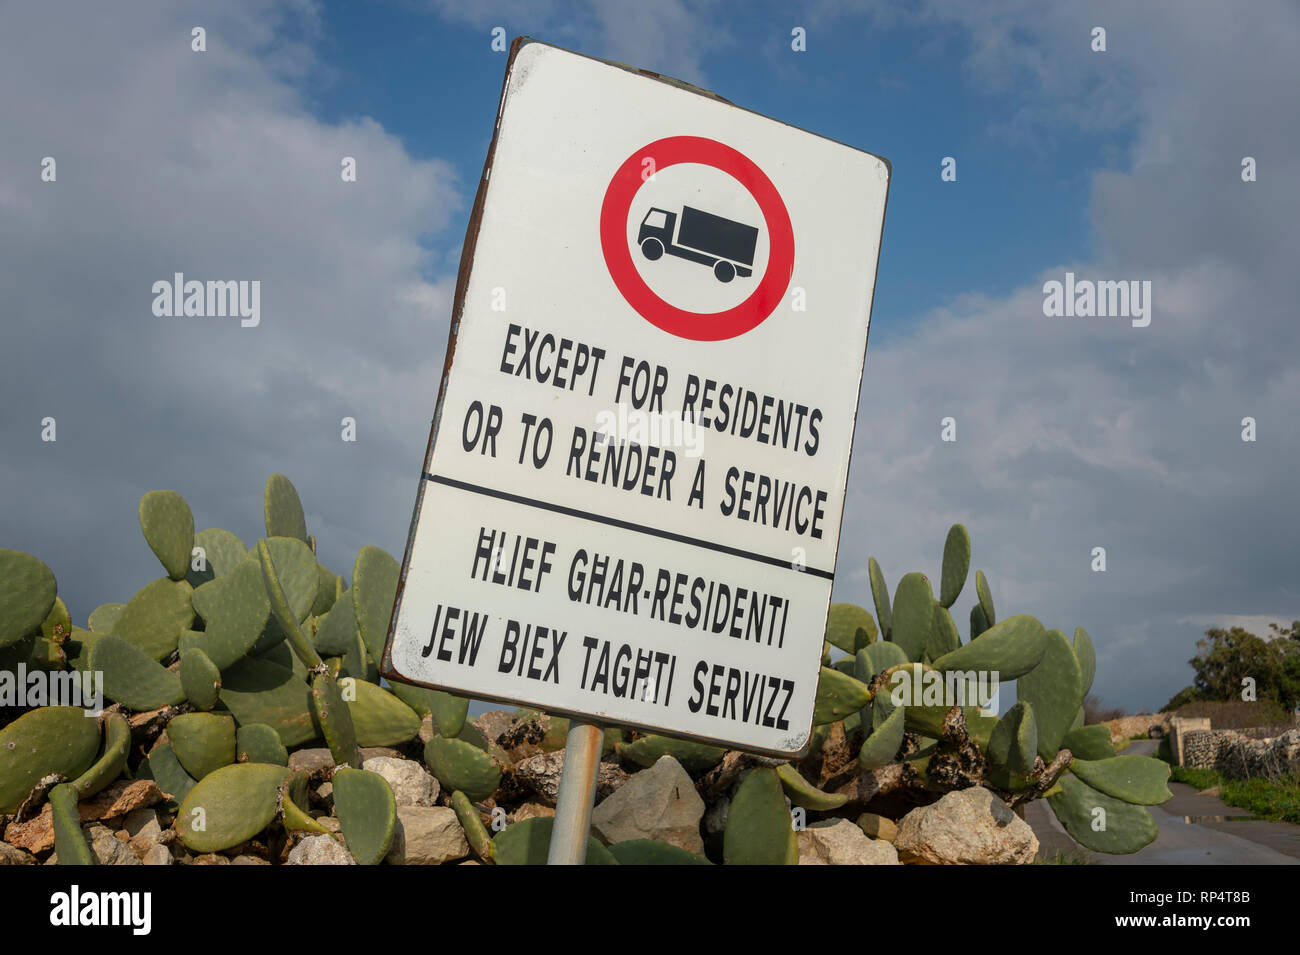 Road sign, 'Except for residents or to render a service'. No entry. Stock Photo